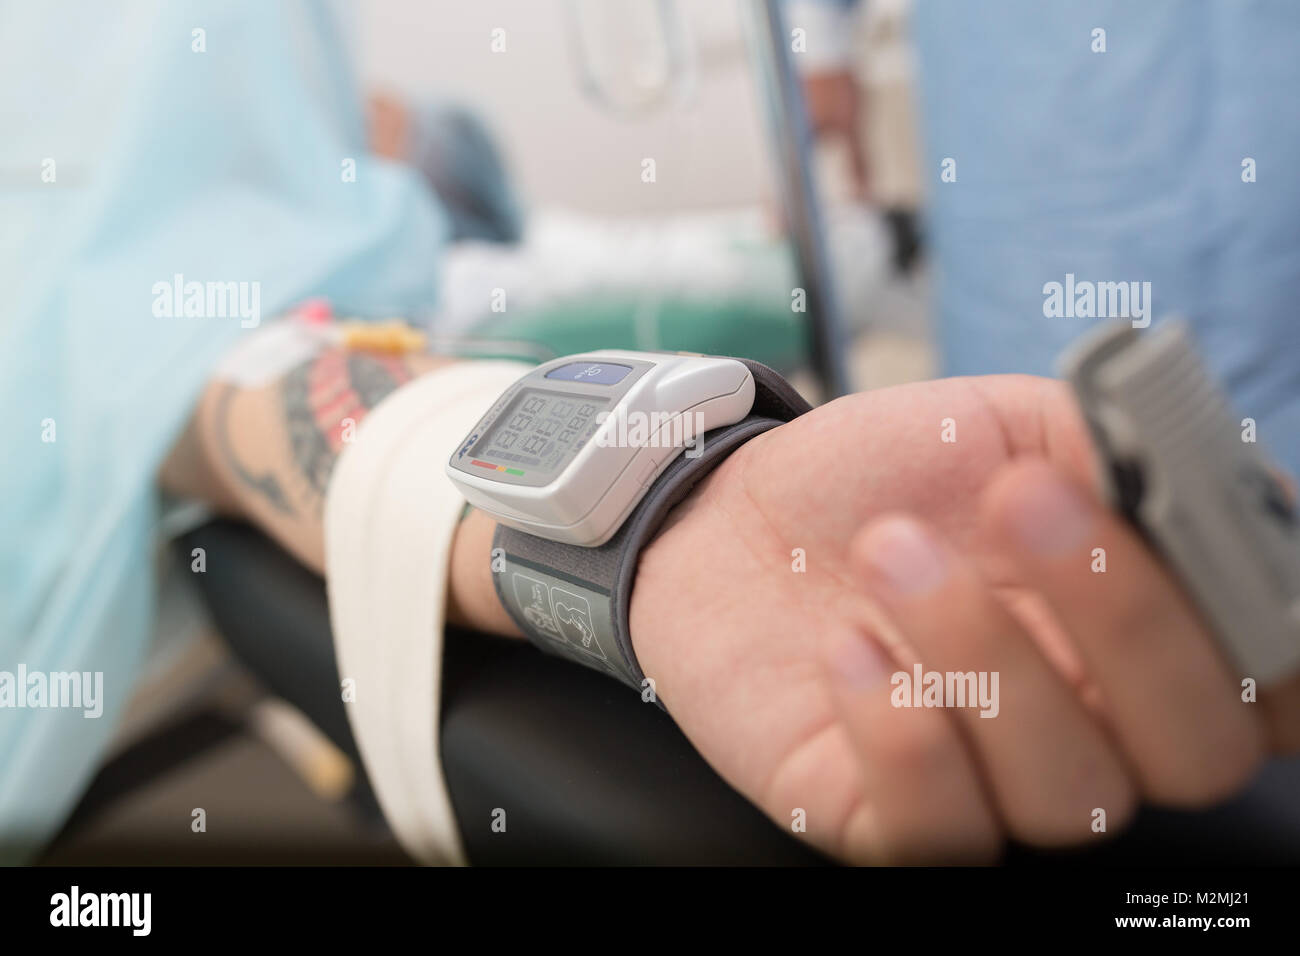 pulse oximeter on finger of patient during surgery. hand of male patient lying on the hospital bed with Digital - Stock Image